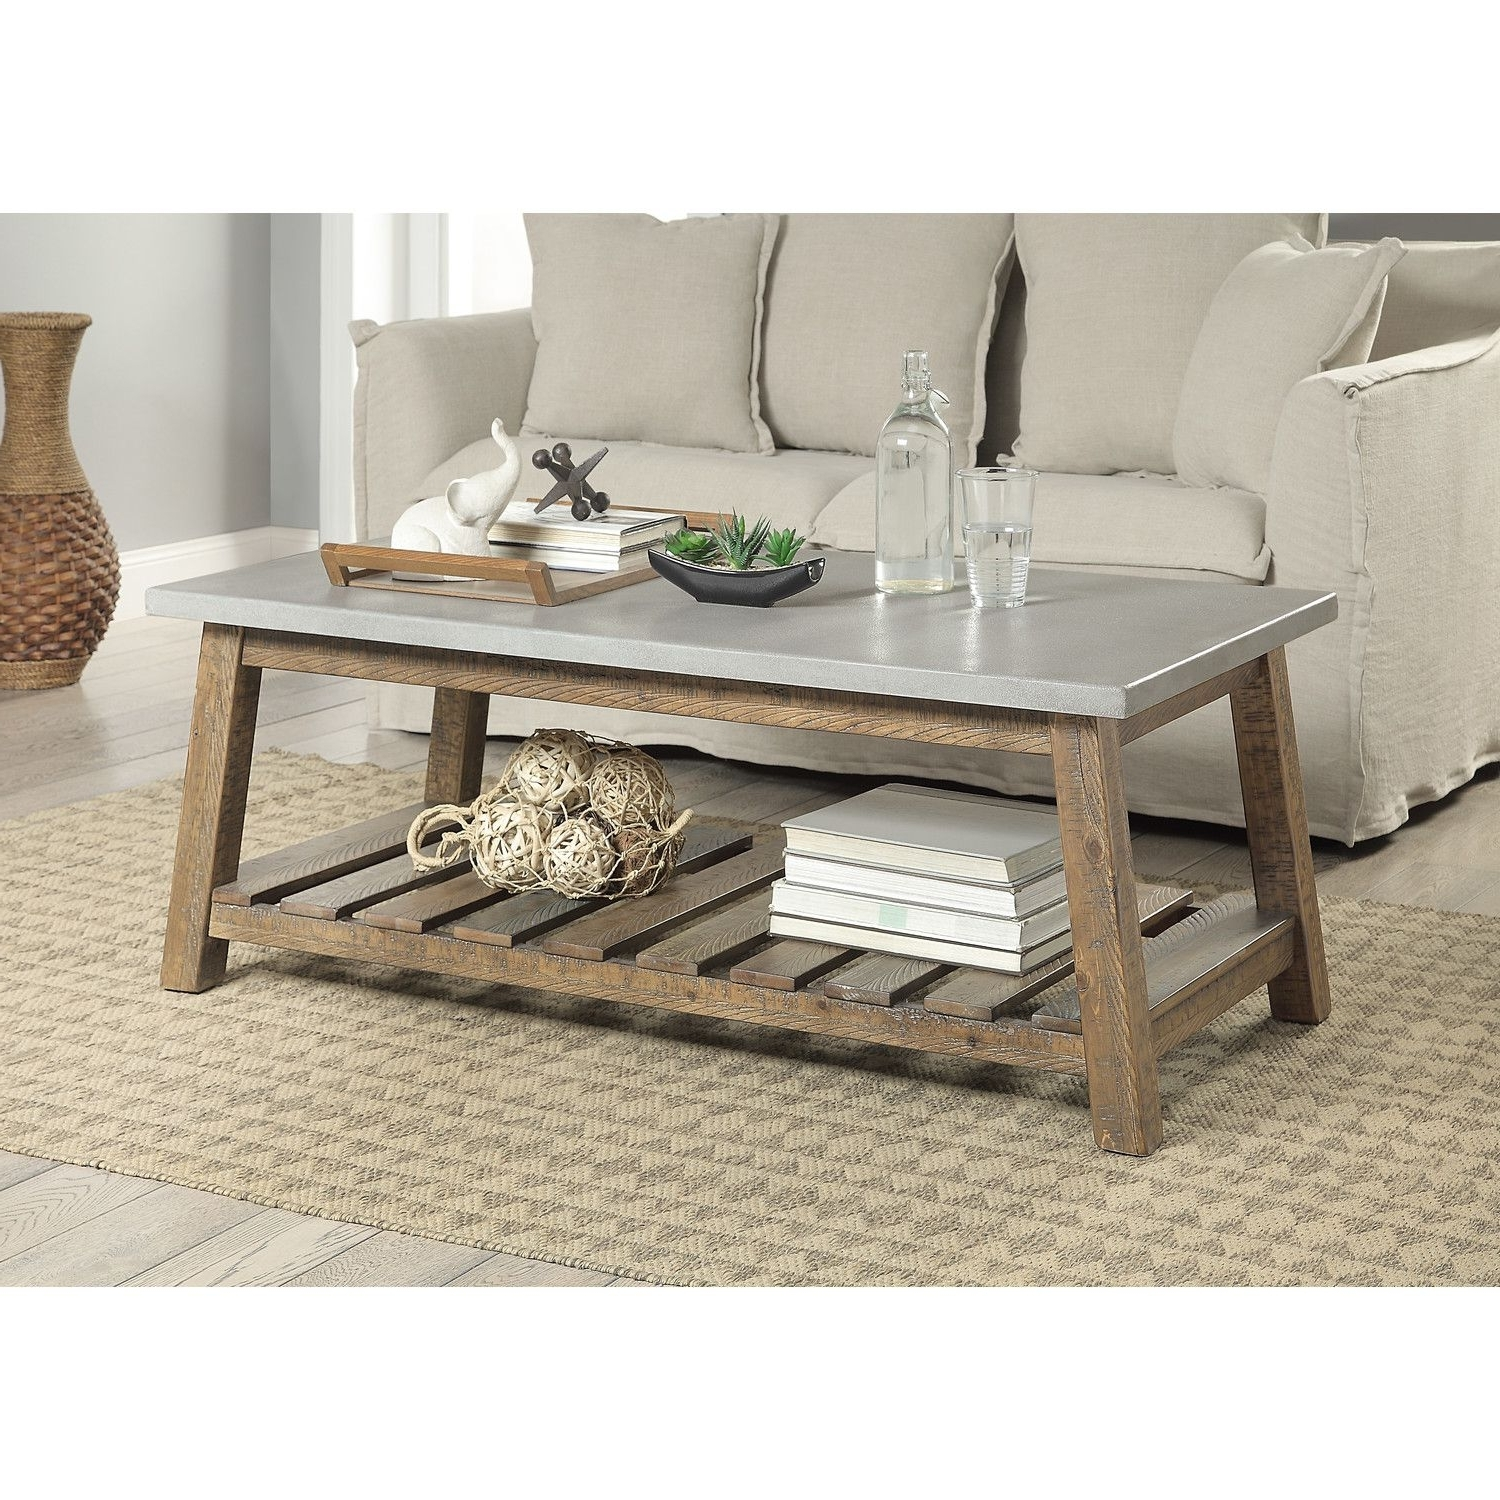 Preferred Santa Fe Coffee Tables With Regard To Features: Fir And Concrete Blend. Casual Rustic. Color: Grey (View 18 of 20)